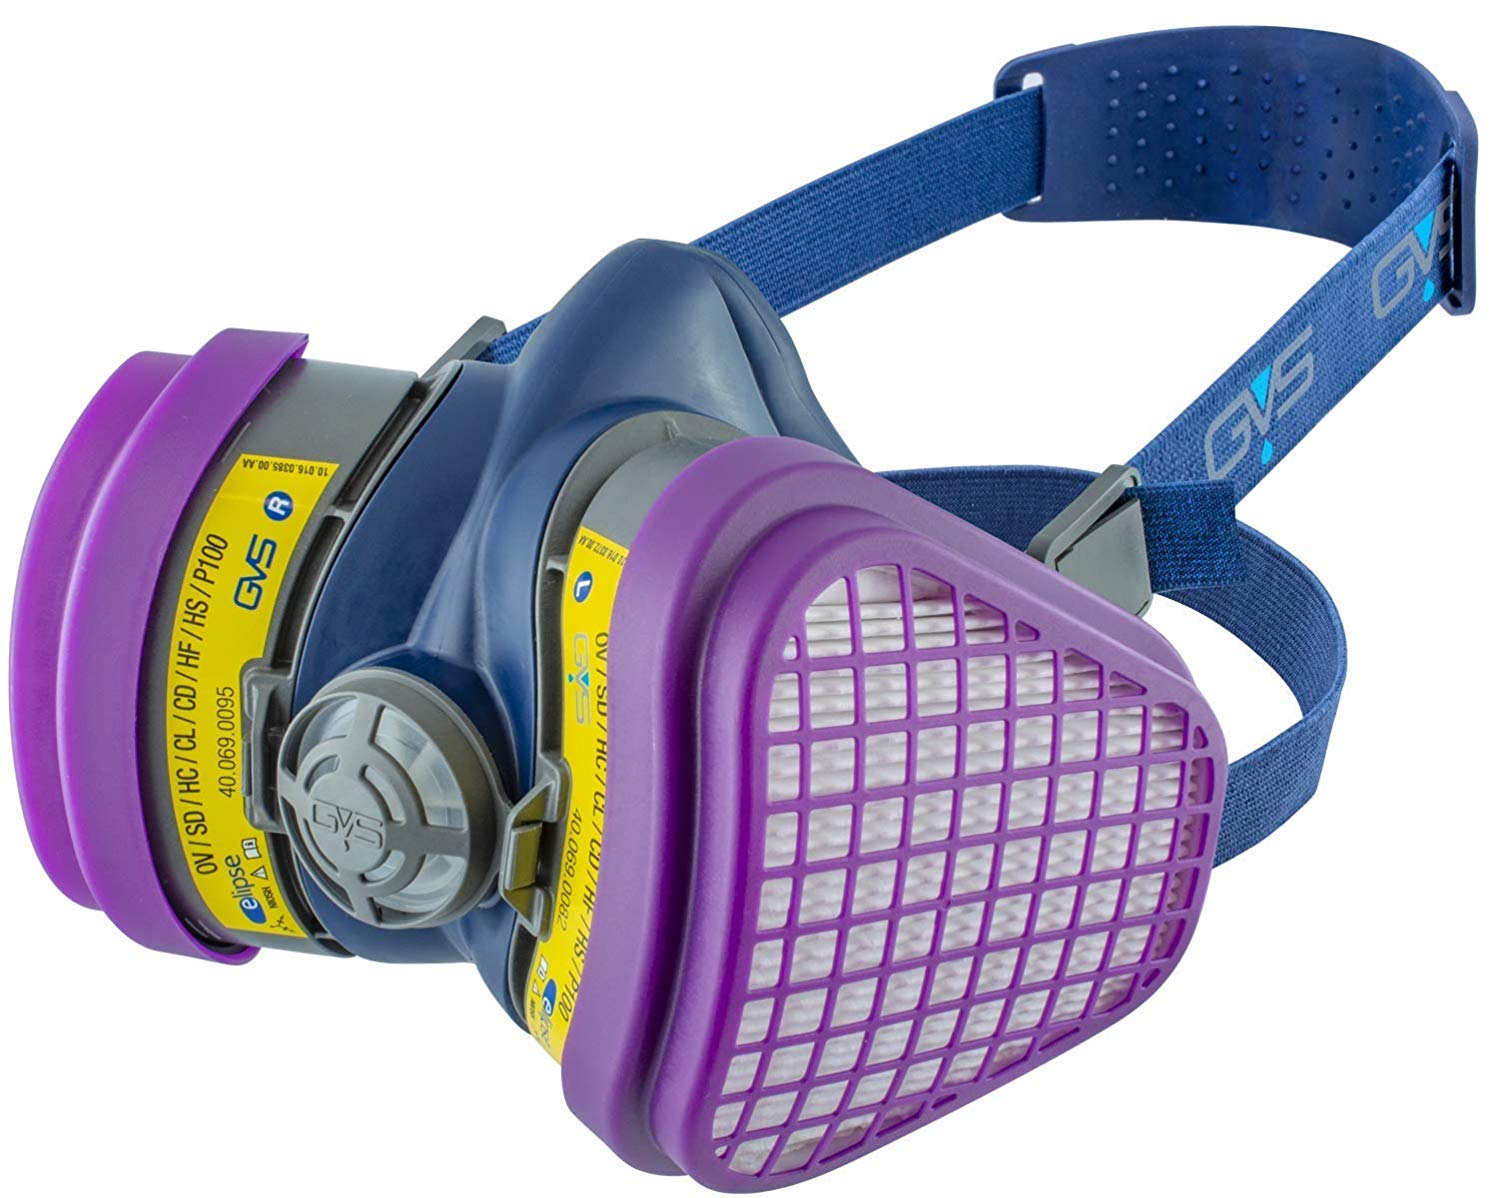 GVS SPR473 Elipse OV/AG-P100 Dust and Organic/Acid Gas Vapour Half Mask Respirator with Replaceable and Reusable Filters Included by GVS Elipse